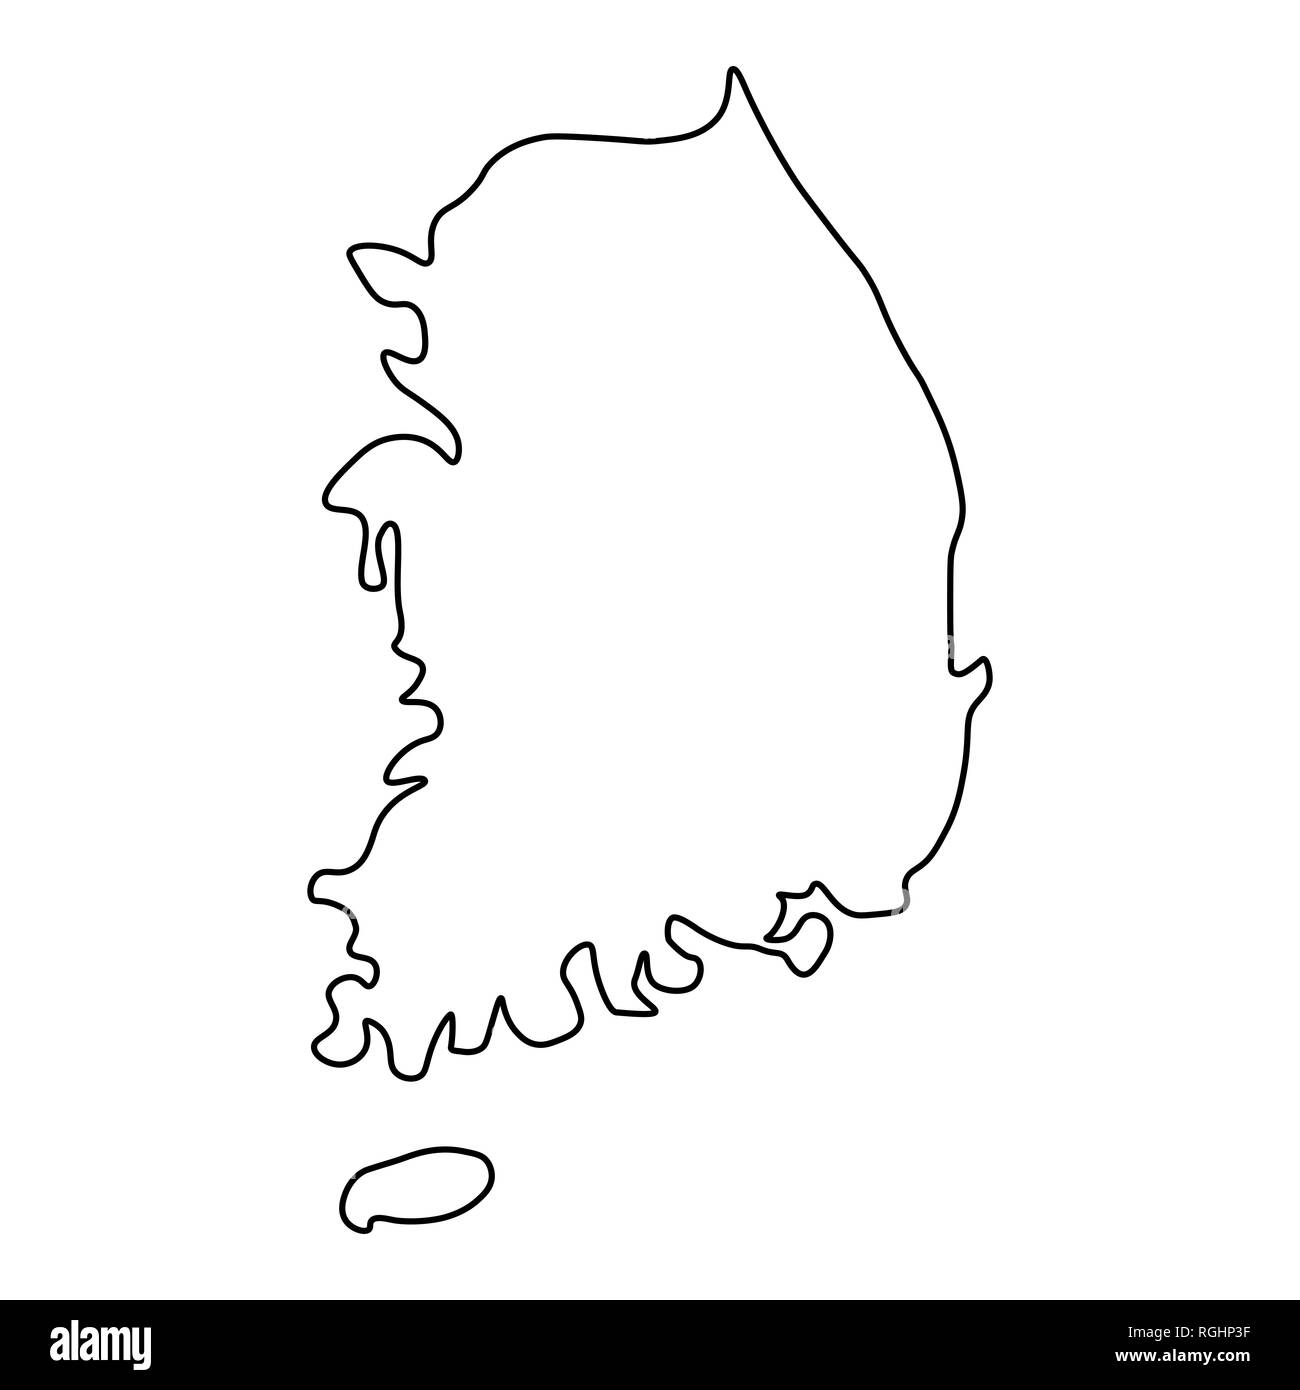 Picture of: Map Of South Korea Outline Silhouette Of South Korea Map Illustration Stock Photo Alamy